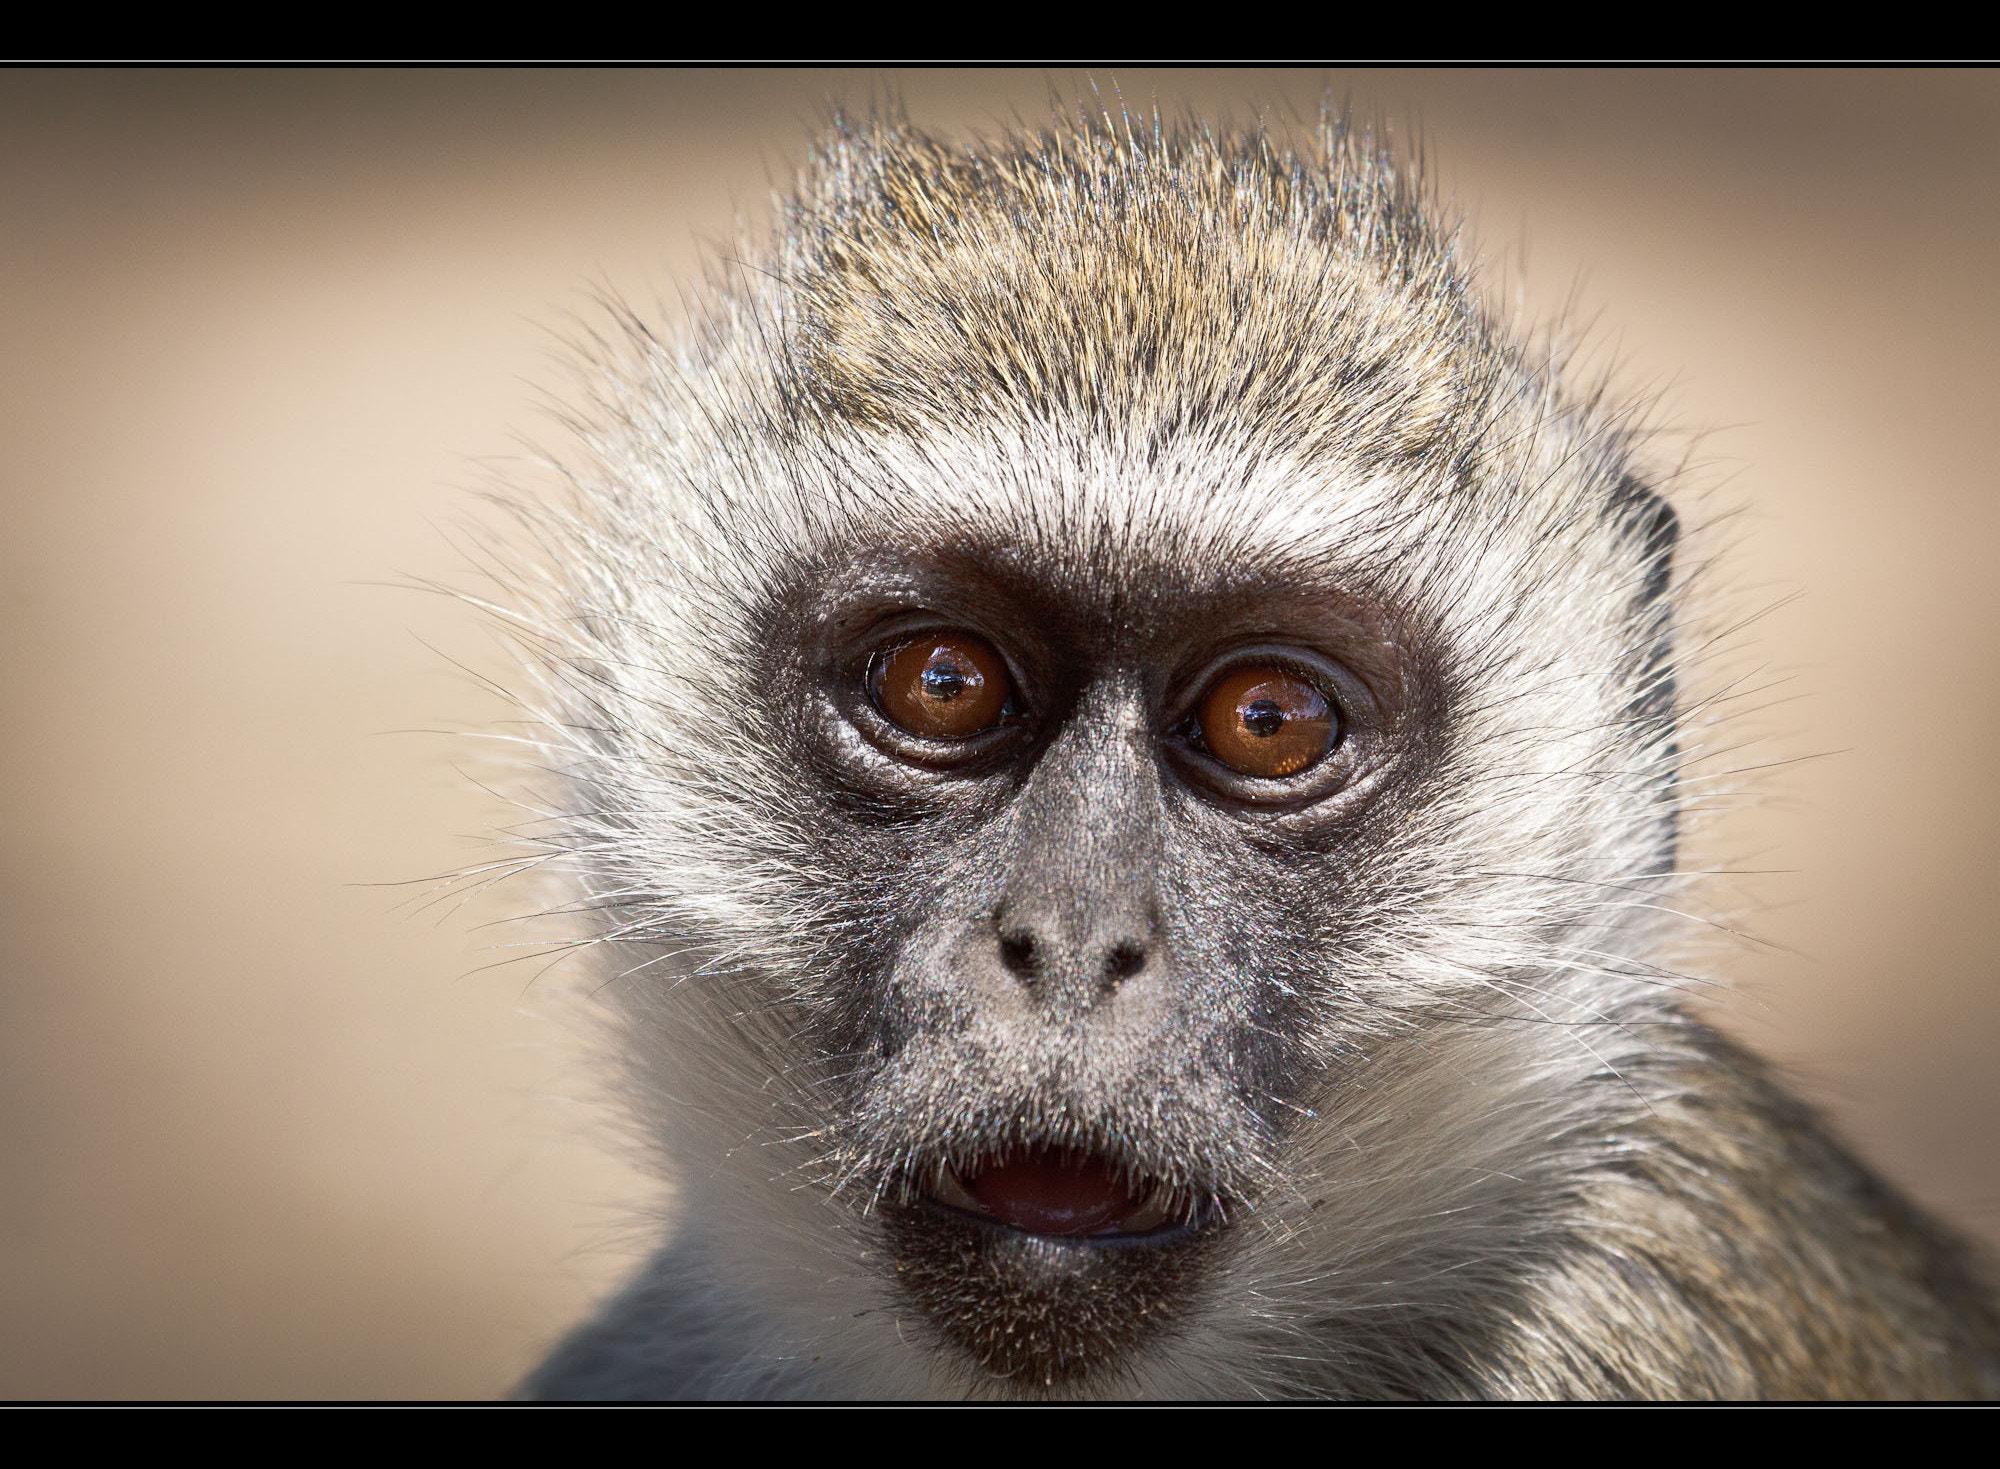 Photograph Monkey by Roger Uceda Molera on 500px